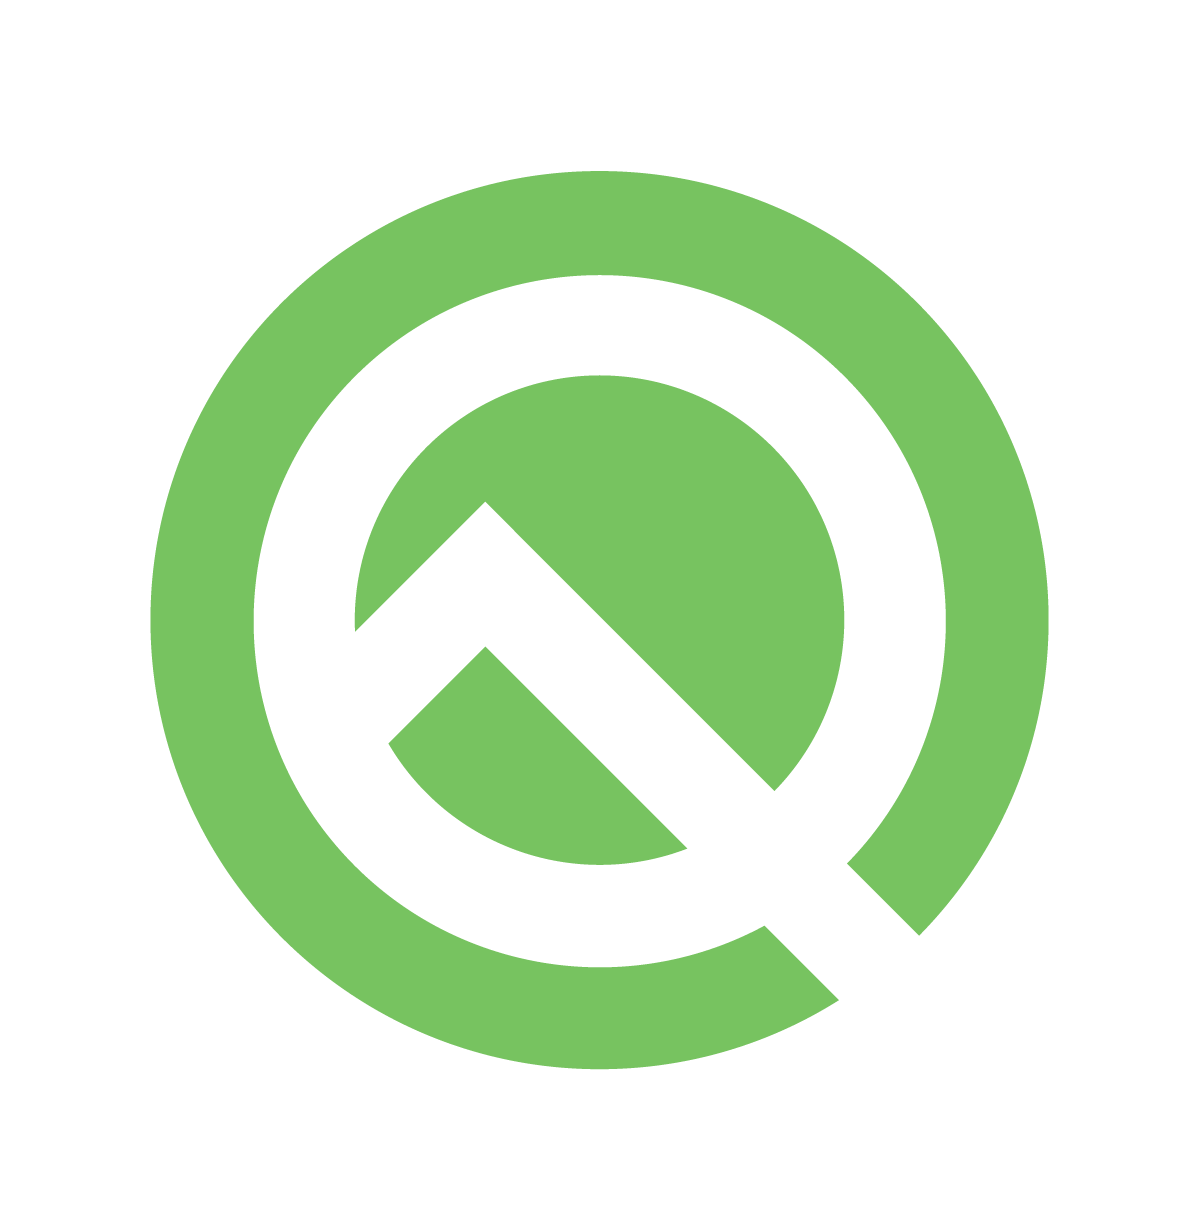 Android Q 베타 로고